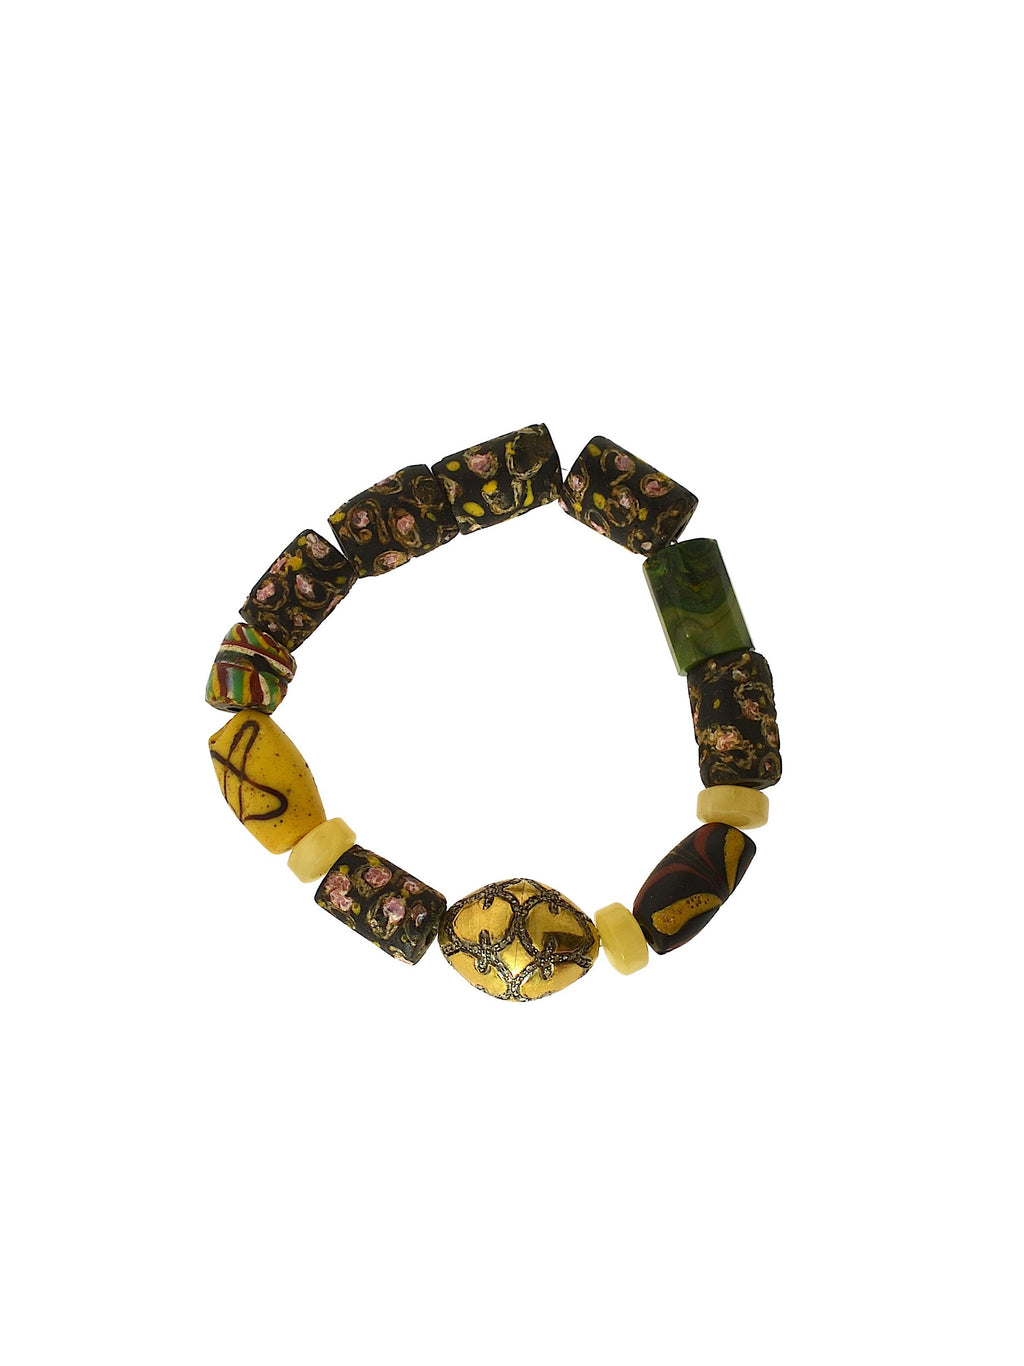 Pave Diamond in Brass Bead on African Beads, with Citrine and Apatite Beads